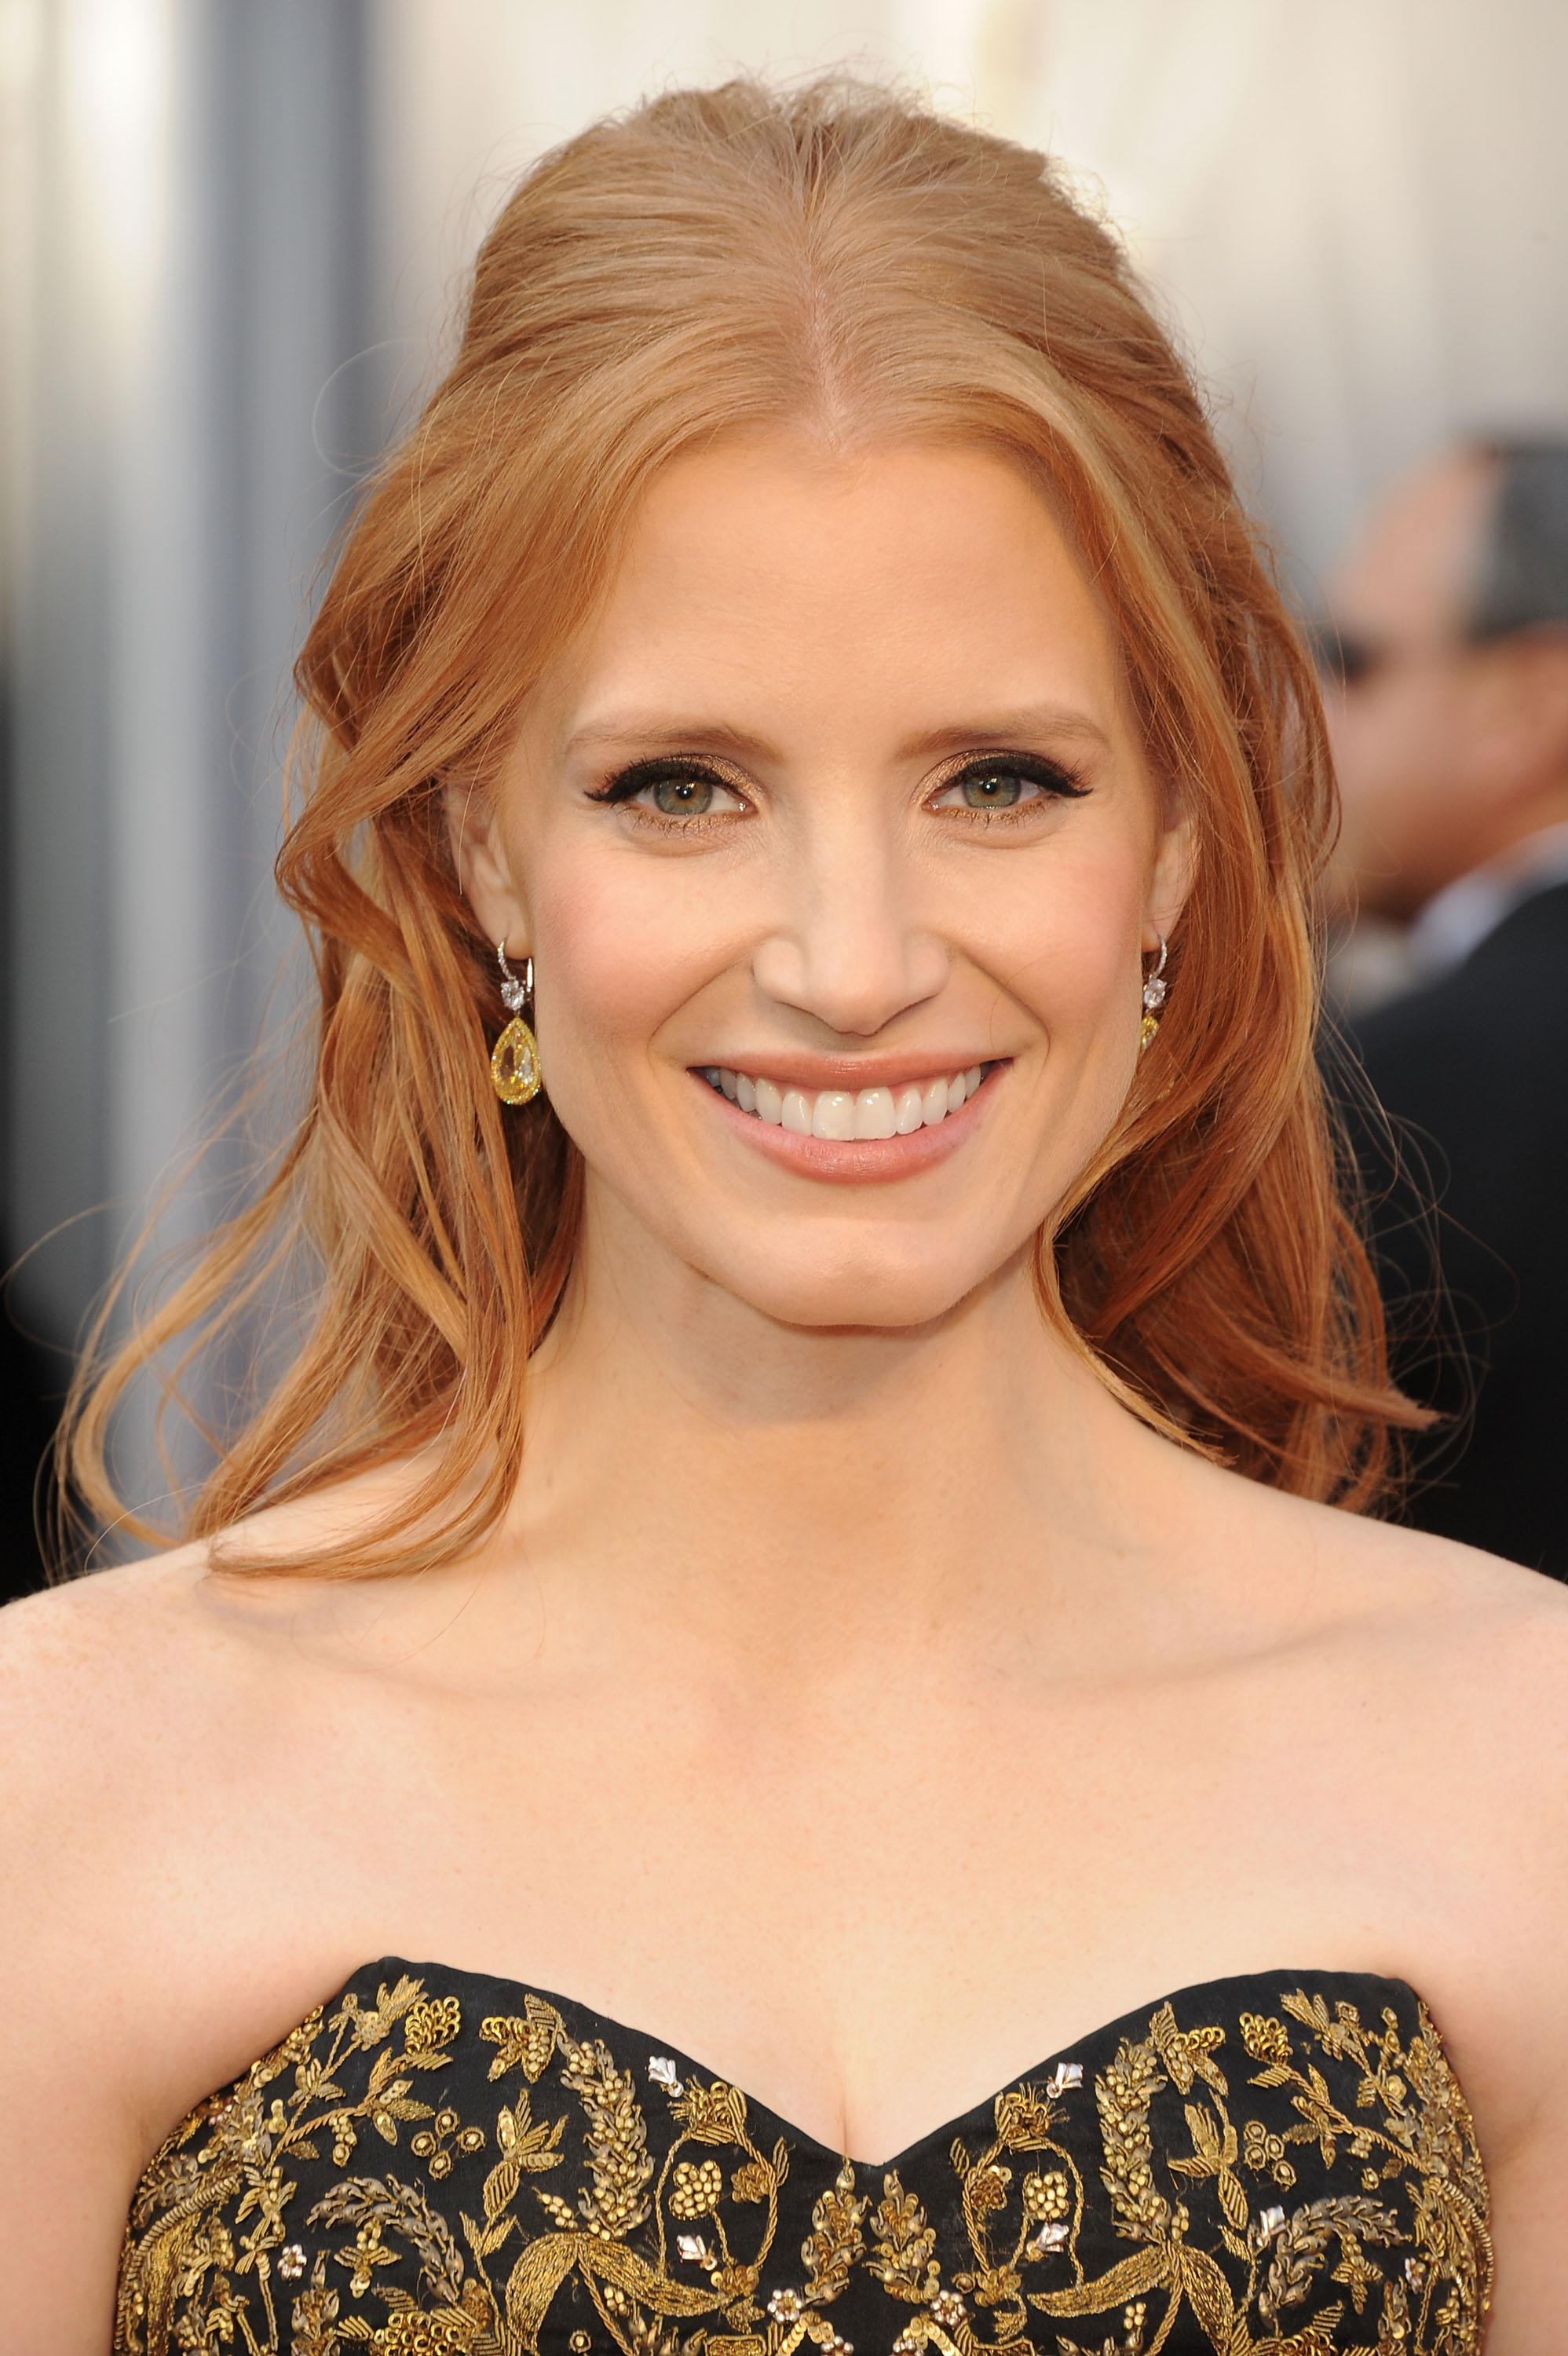 Jessica Chastain wore $2 million of diamonds to the Oscars ... Jessica Chastain Movies